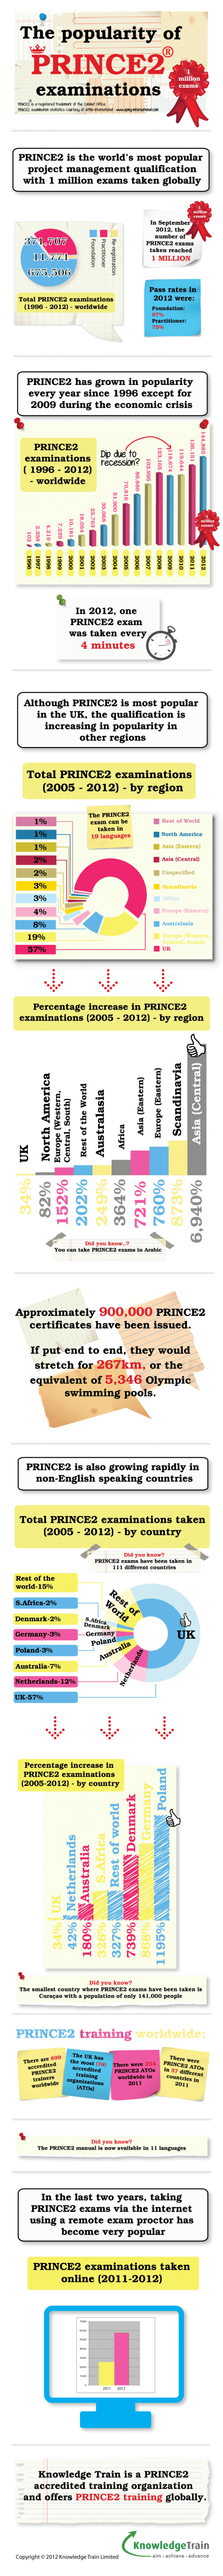 the-popularity-of-prince2-exams-updated-march-2013